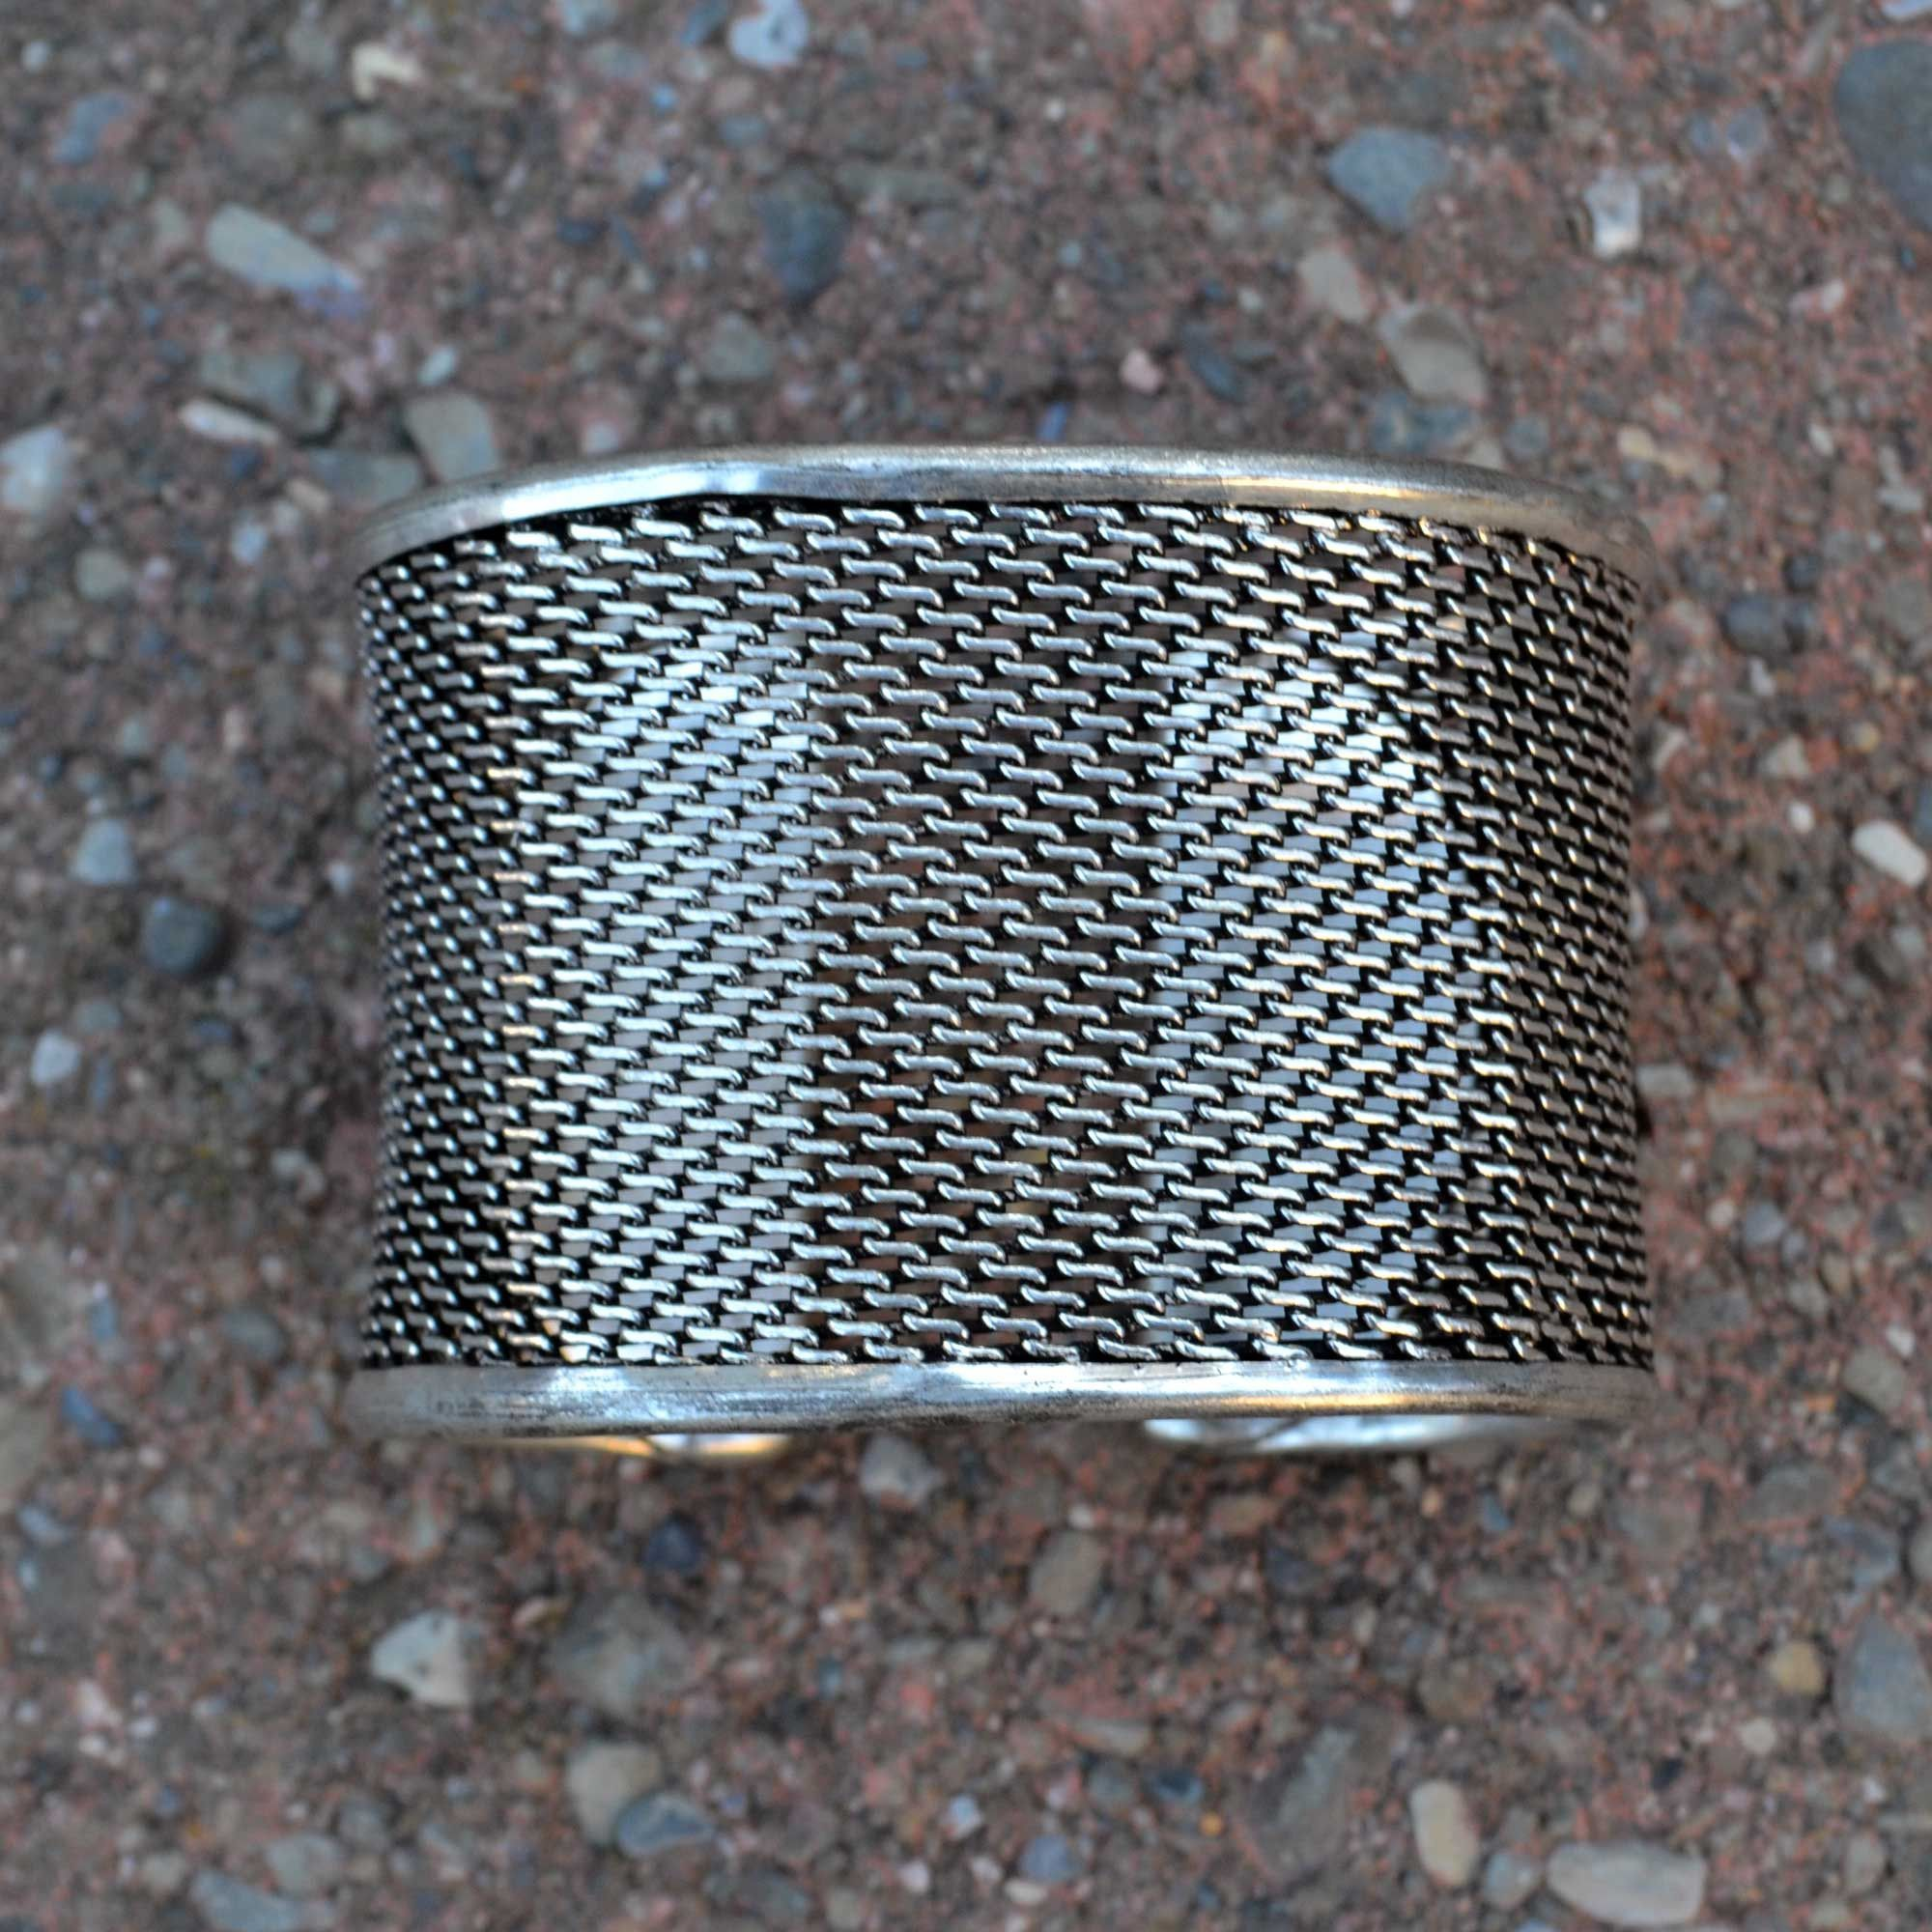 Ethno Mesh Antique Cuff